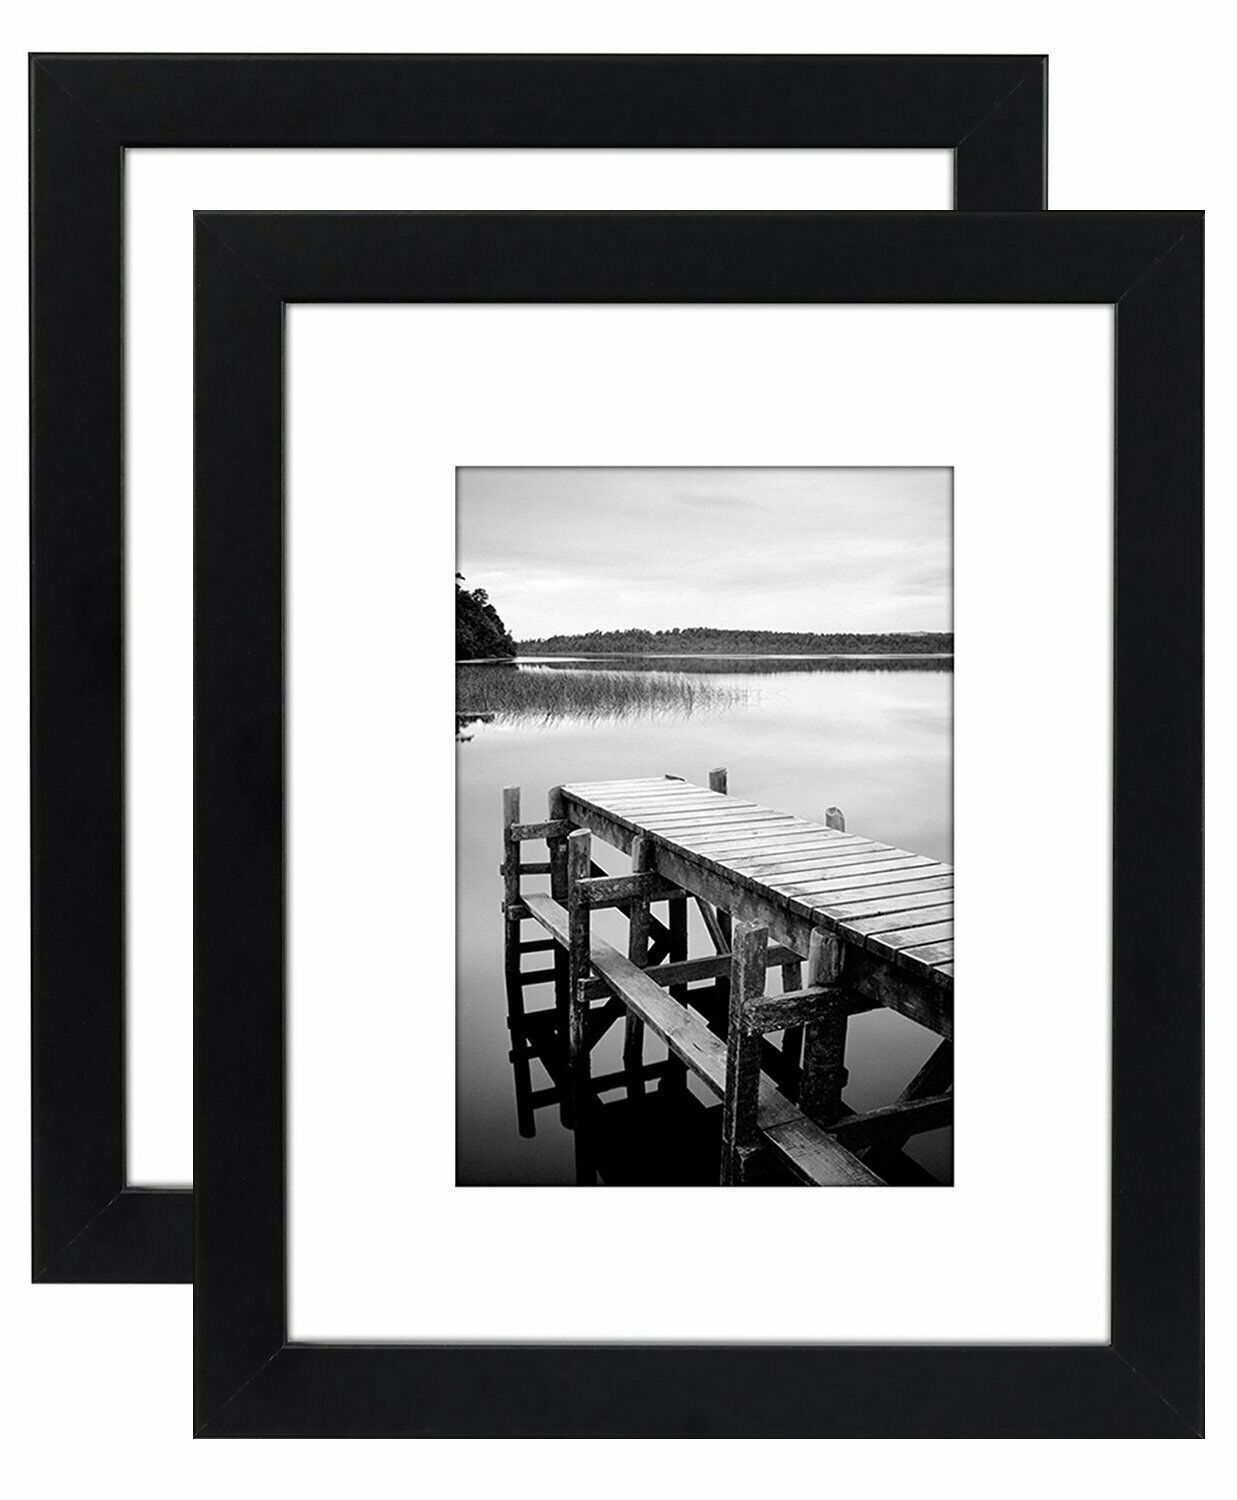 2-Pack, 8x10 Black Picture Frames - Made to Display Pictures